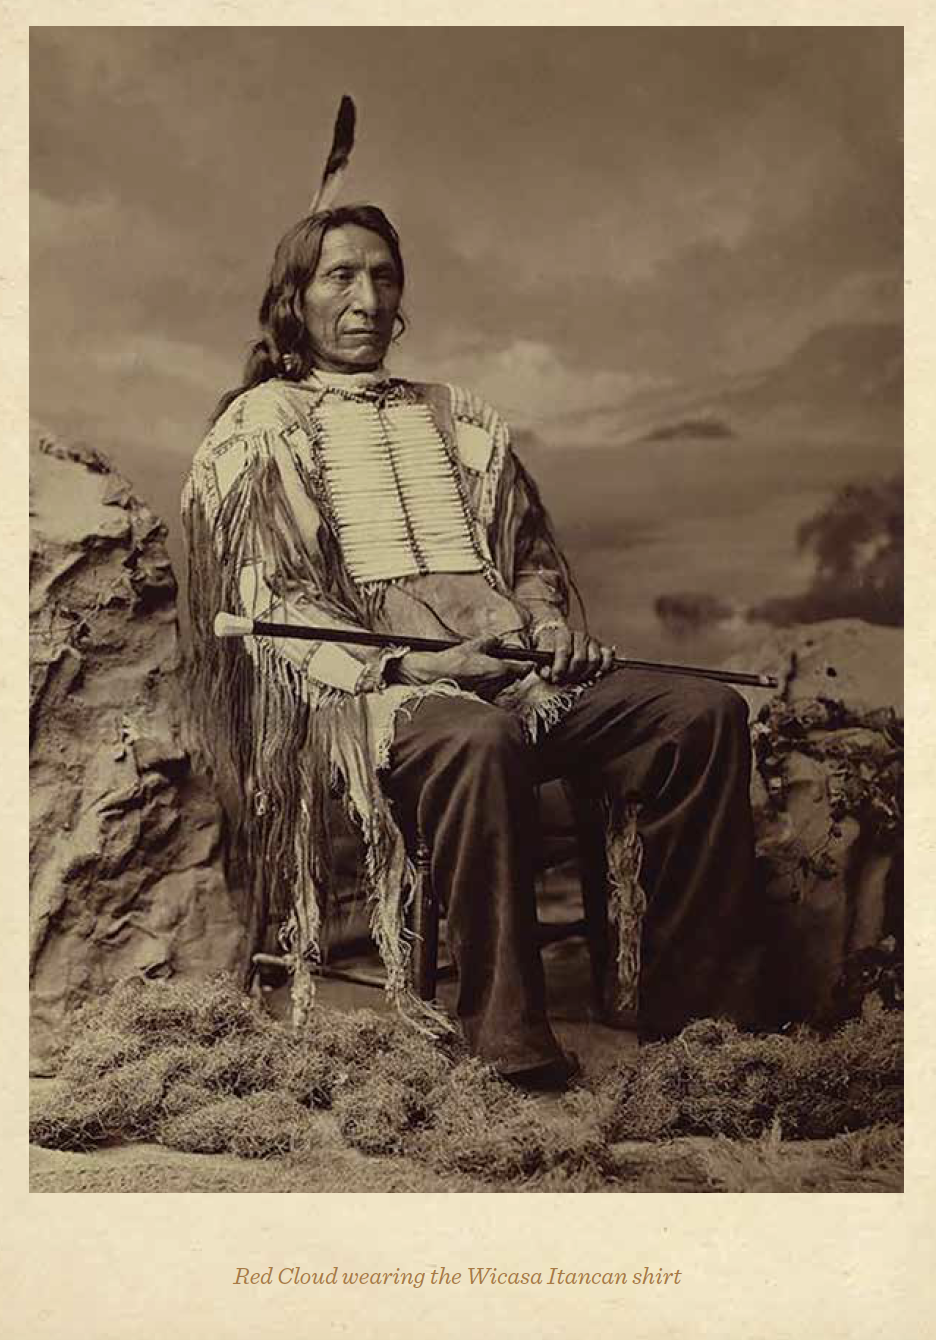 Red Cloud in the shirt wearing a breastplate